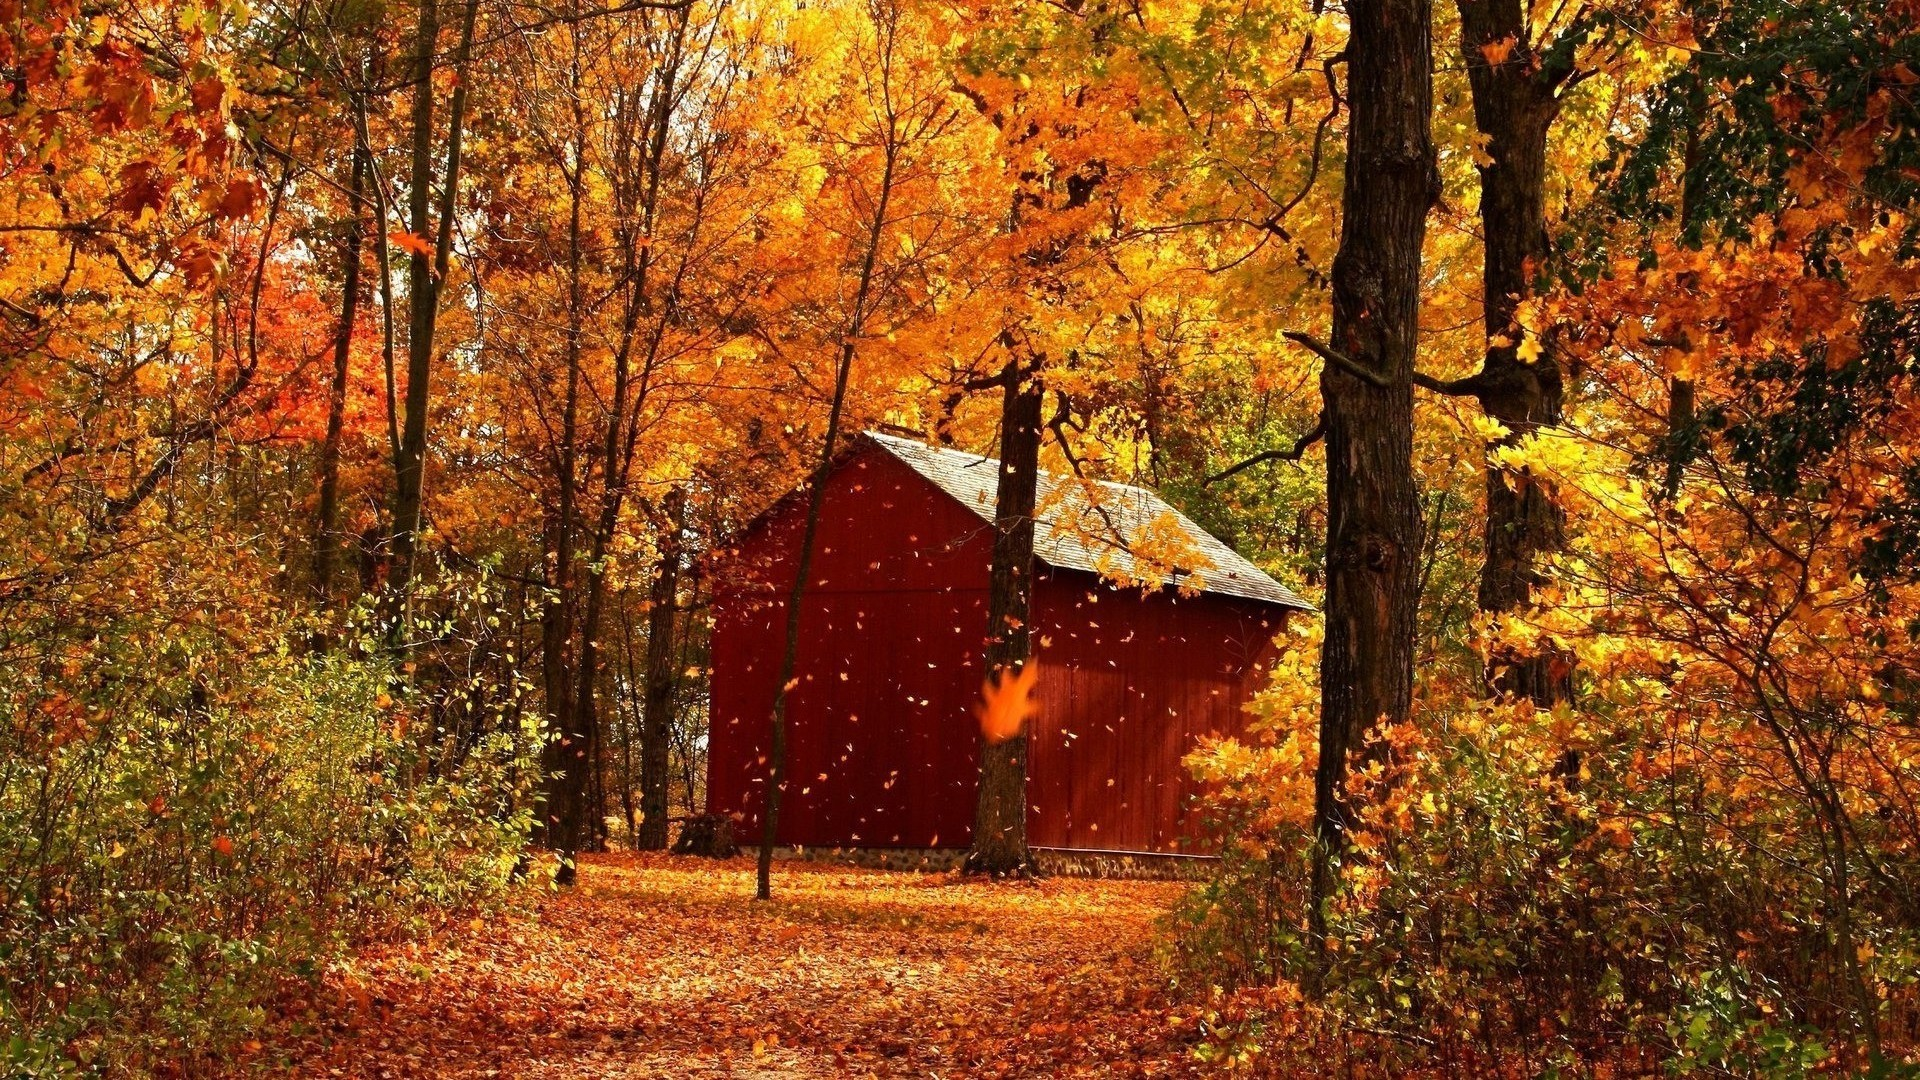 1920x1080 Download Red barn in autumn forest wallpaper 928.